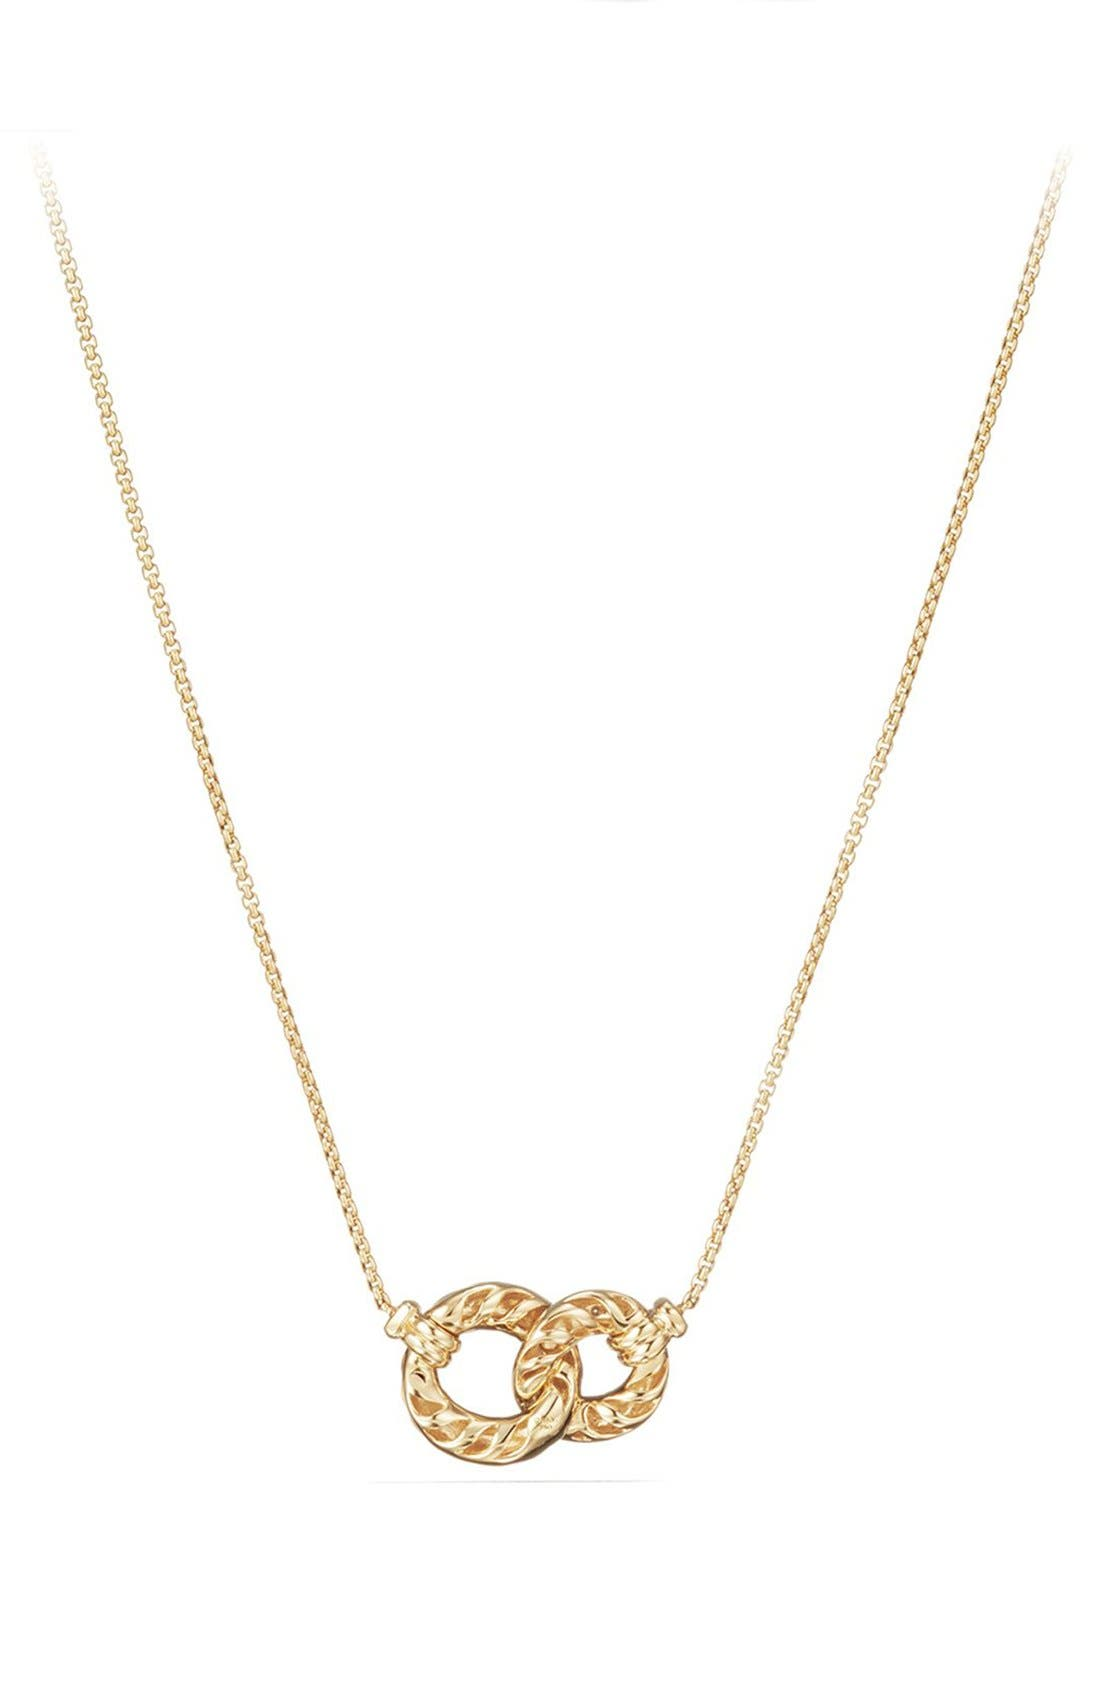 DAVID YURMAN Belmont Extra-Small Double Curb Link Necklace